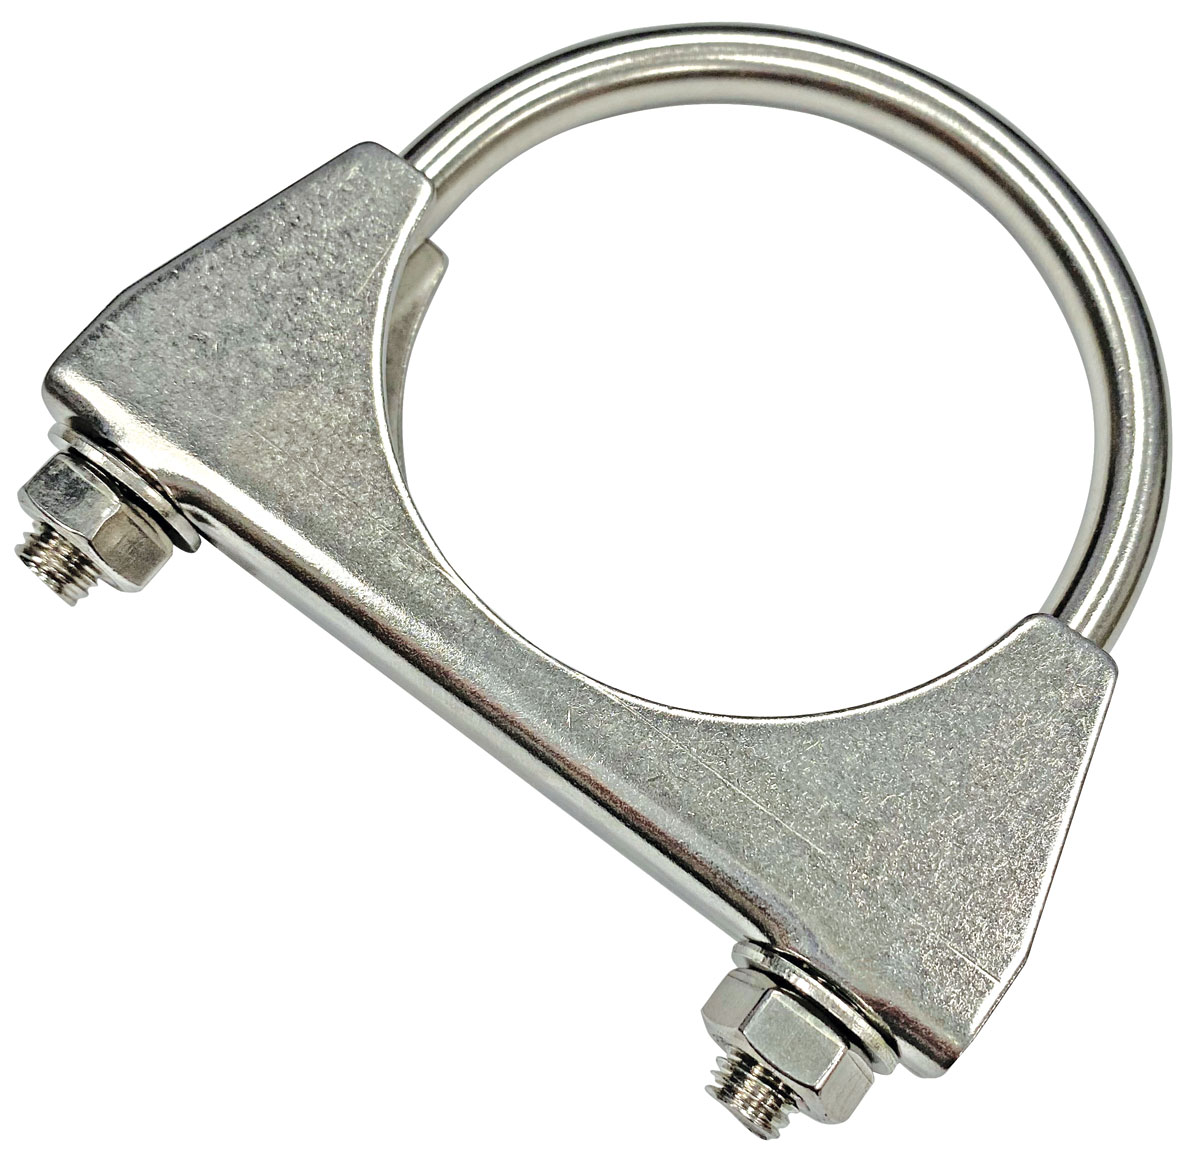 Photo of Exhaust Clamp, Stainless Steel 3""